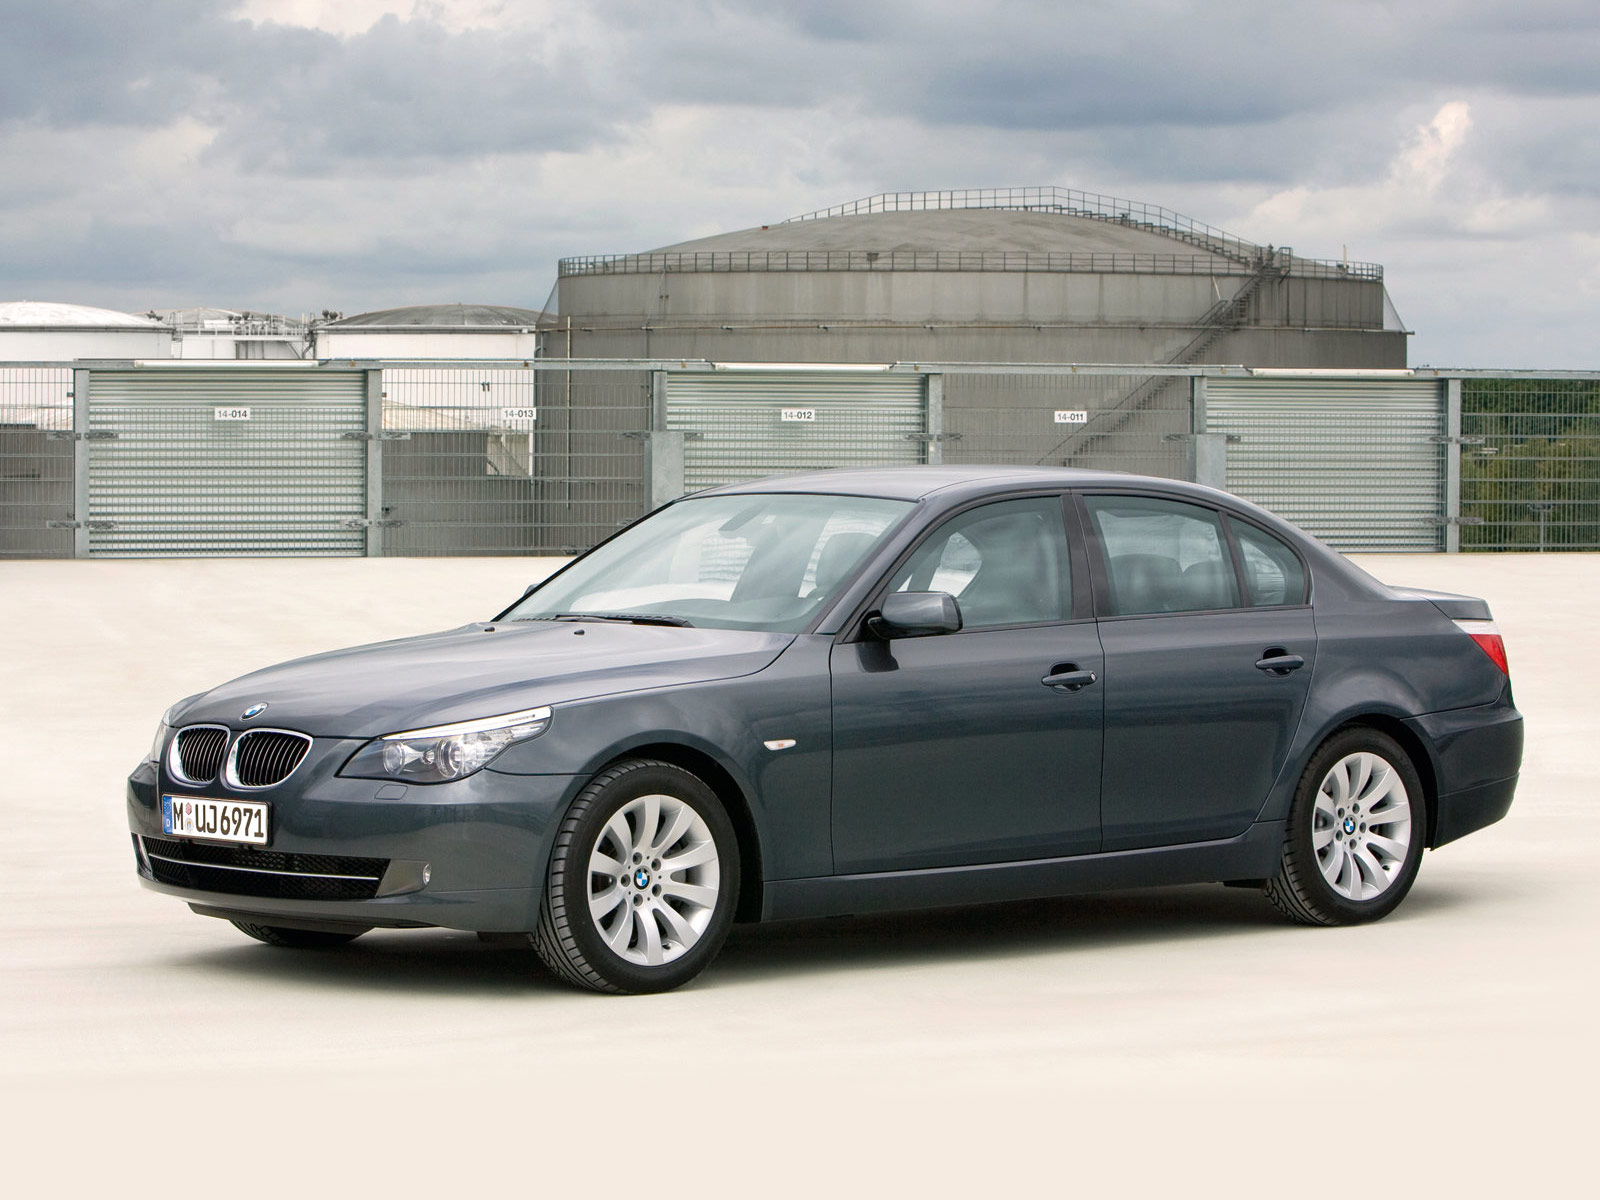 2008 bmw 5 series security review pictures. Black Bedroom Furniture Sets. Home Design Ideas